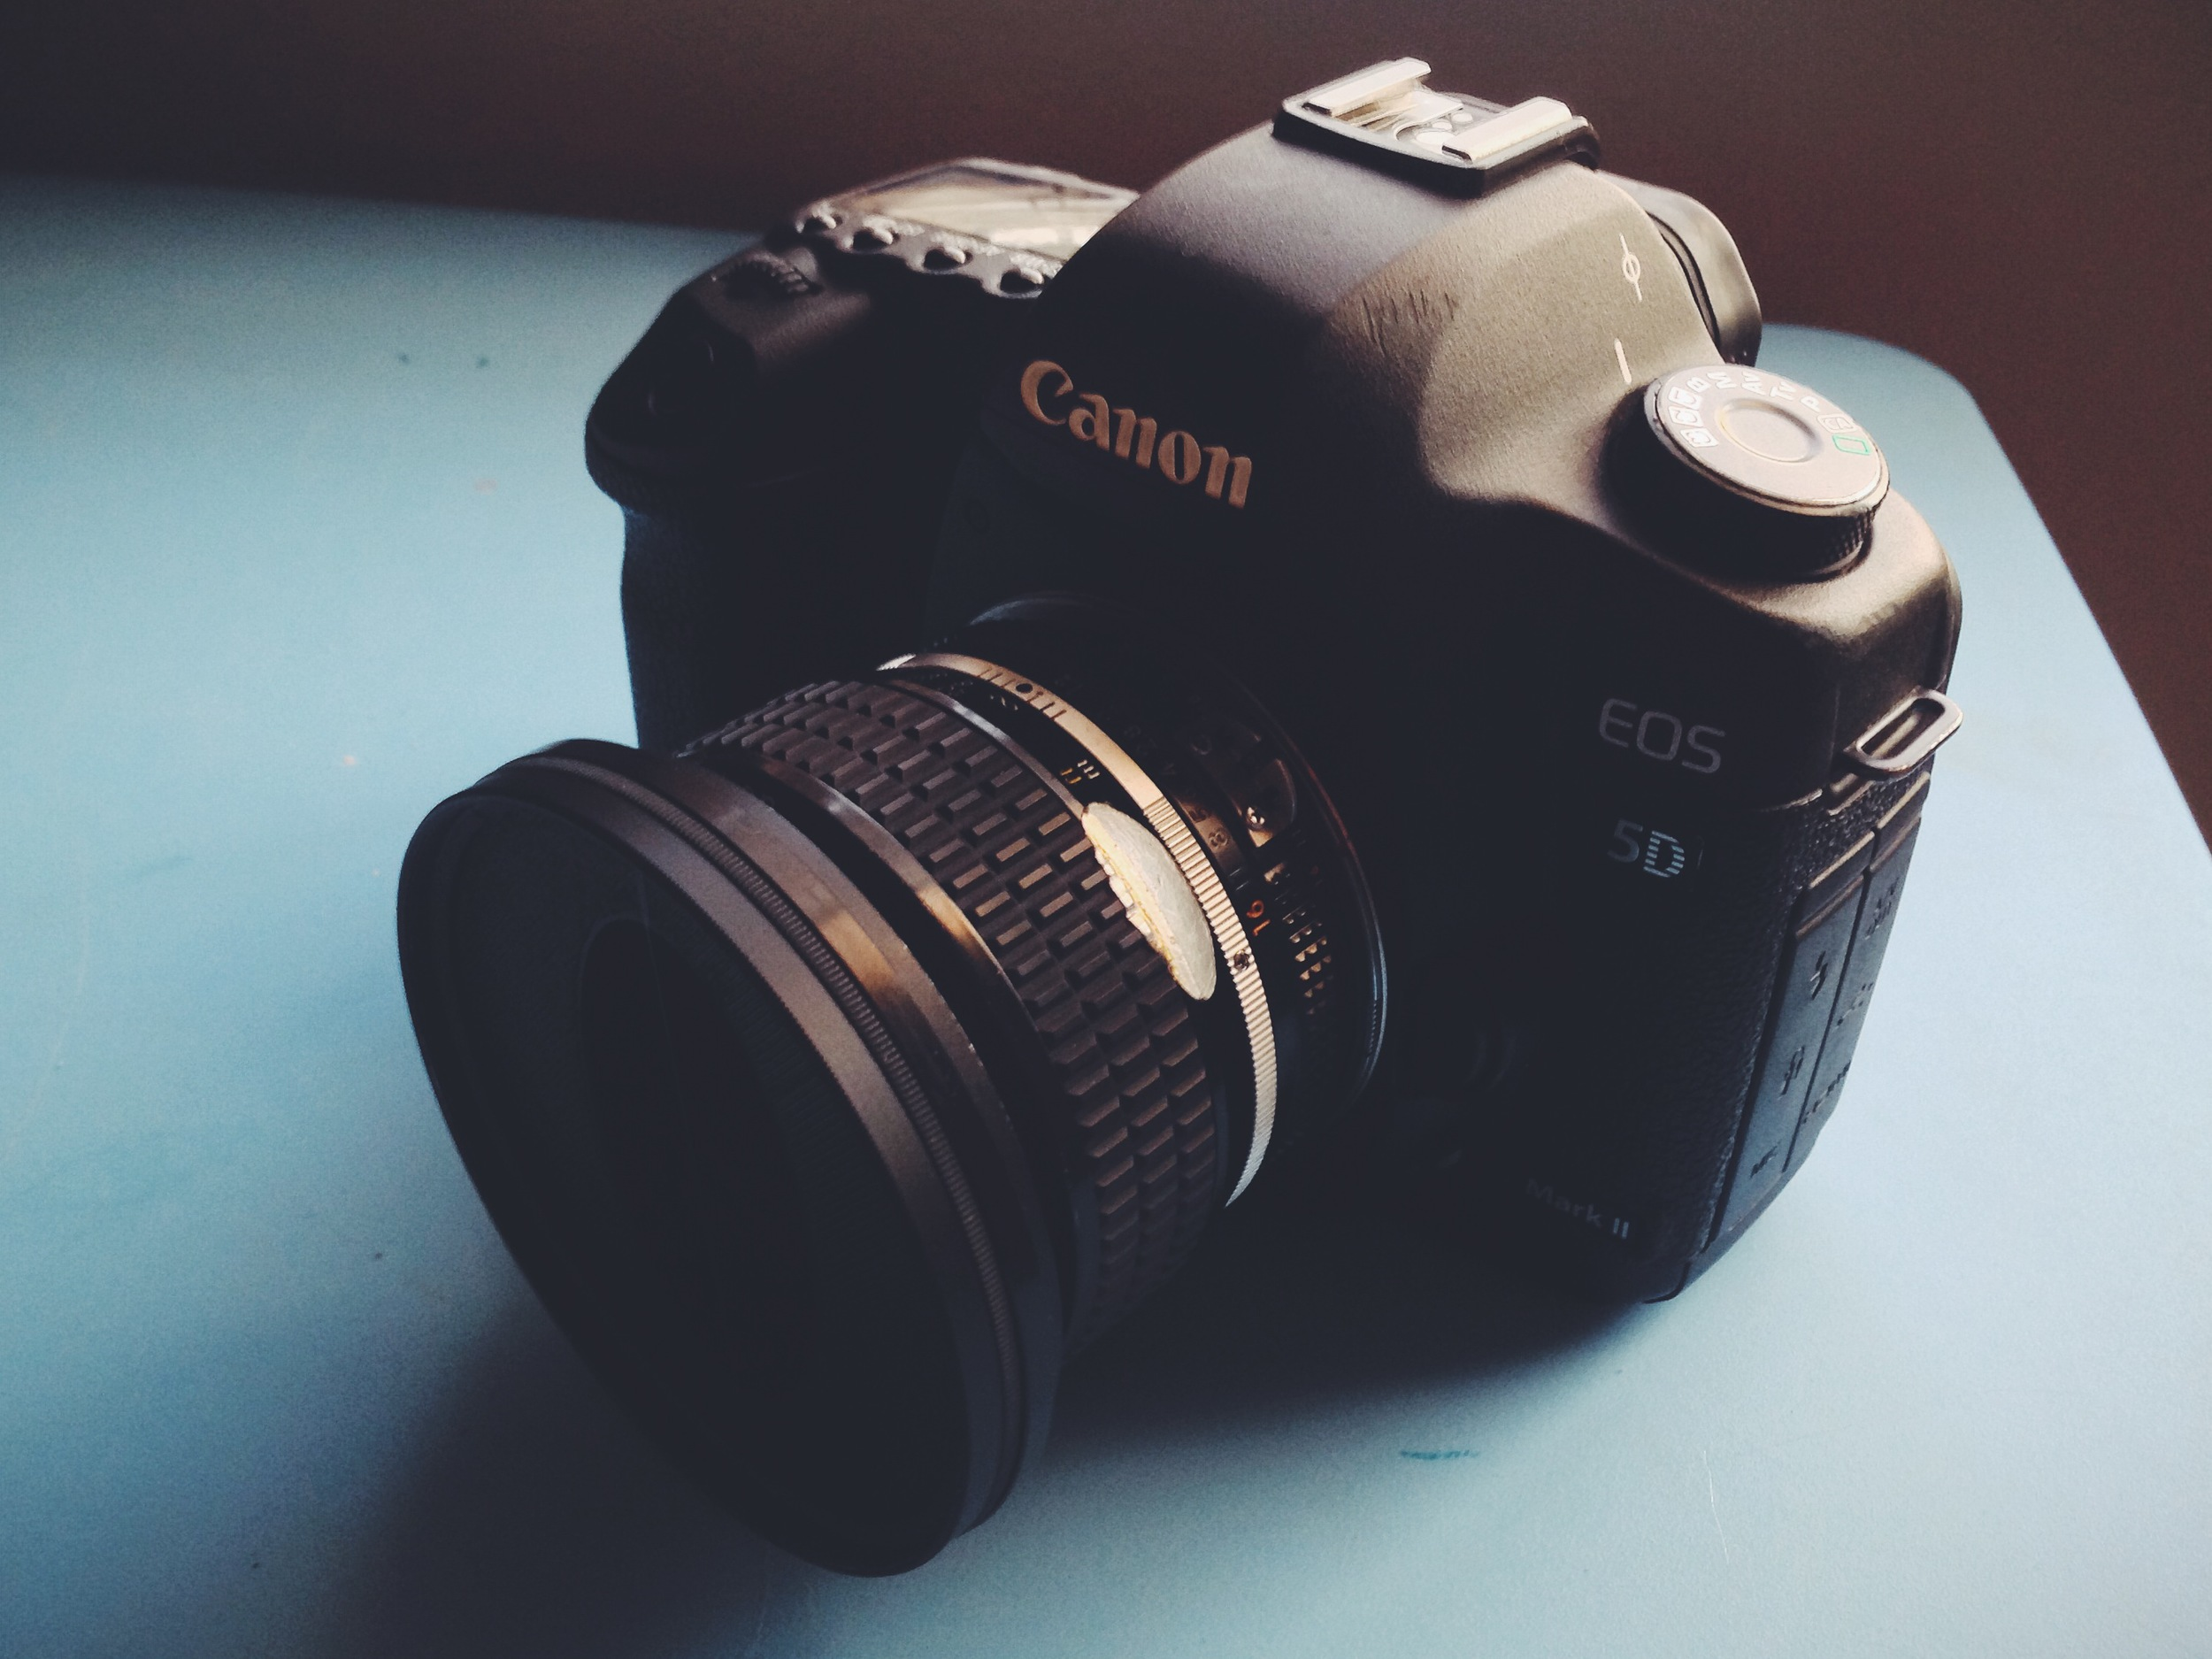 Vintage Filter on the Nikon 50mm f1.2 and Canon 5D.